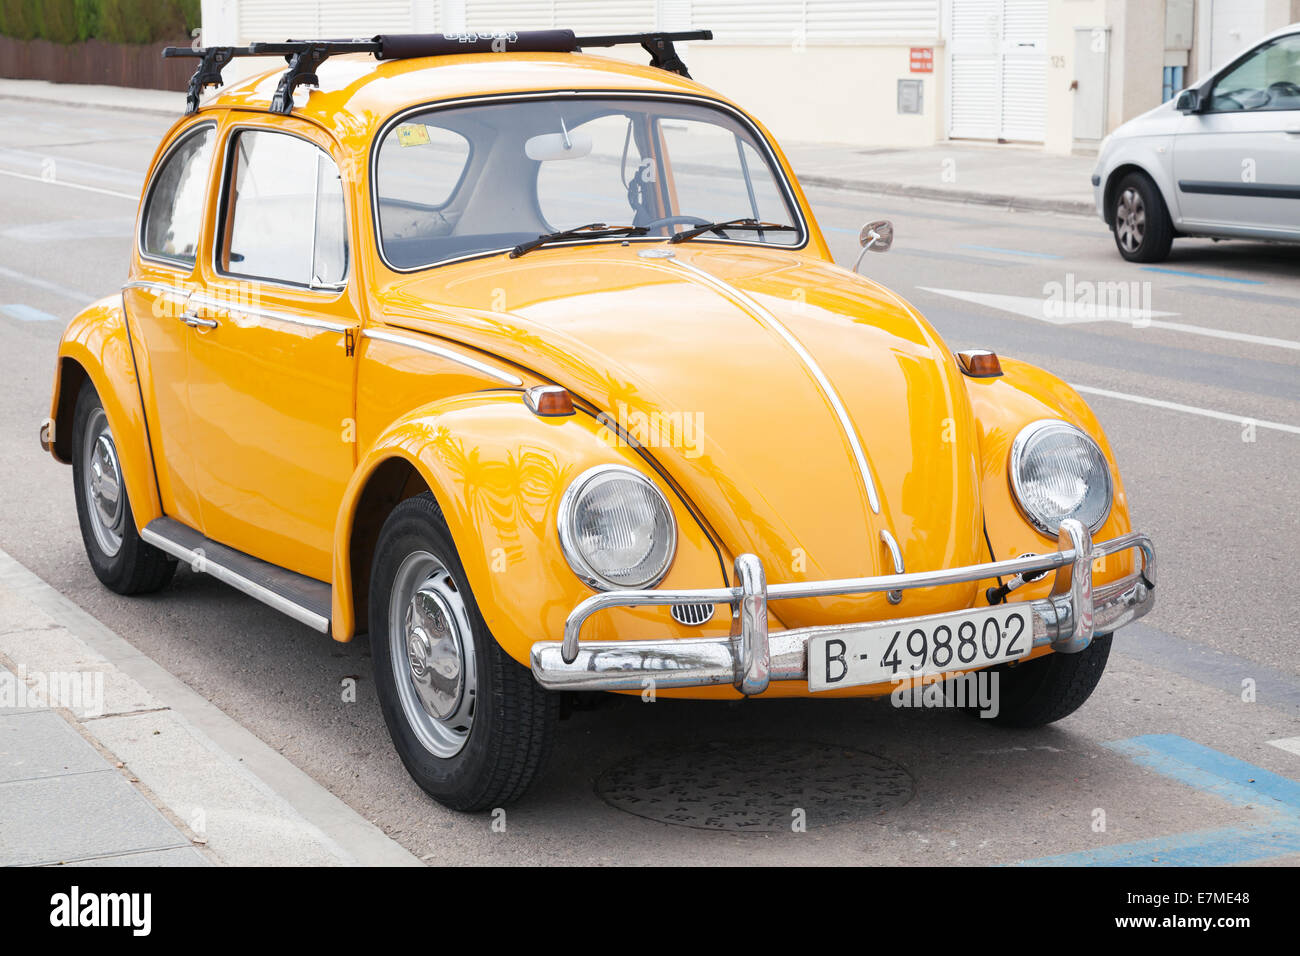 Yellow Volkswagen Kafer stands parked on the roadside - Stock Image